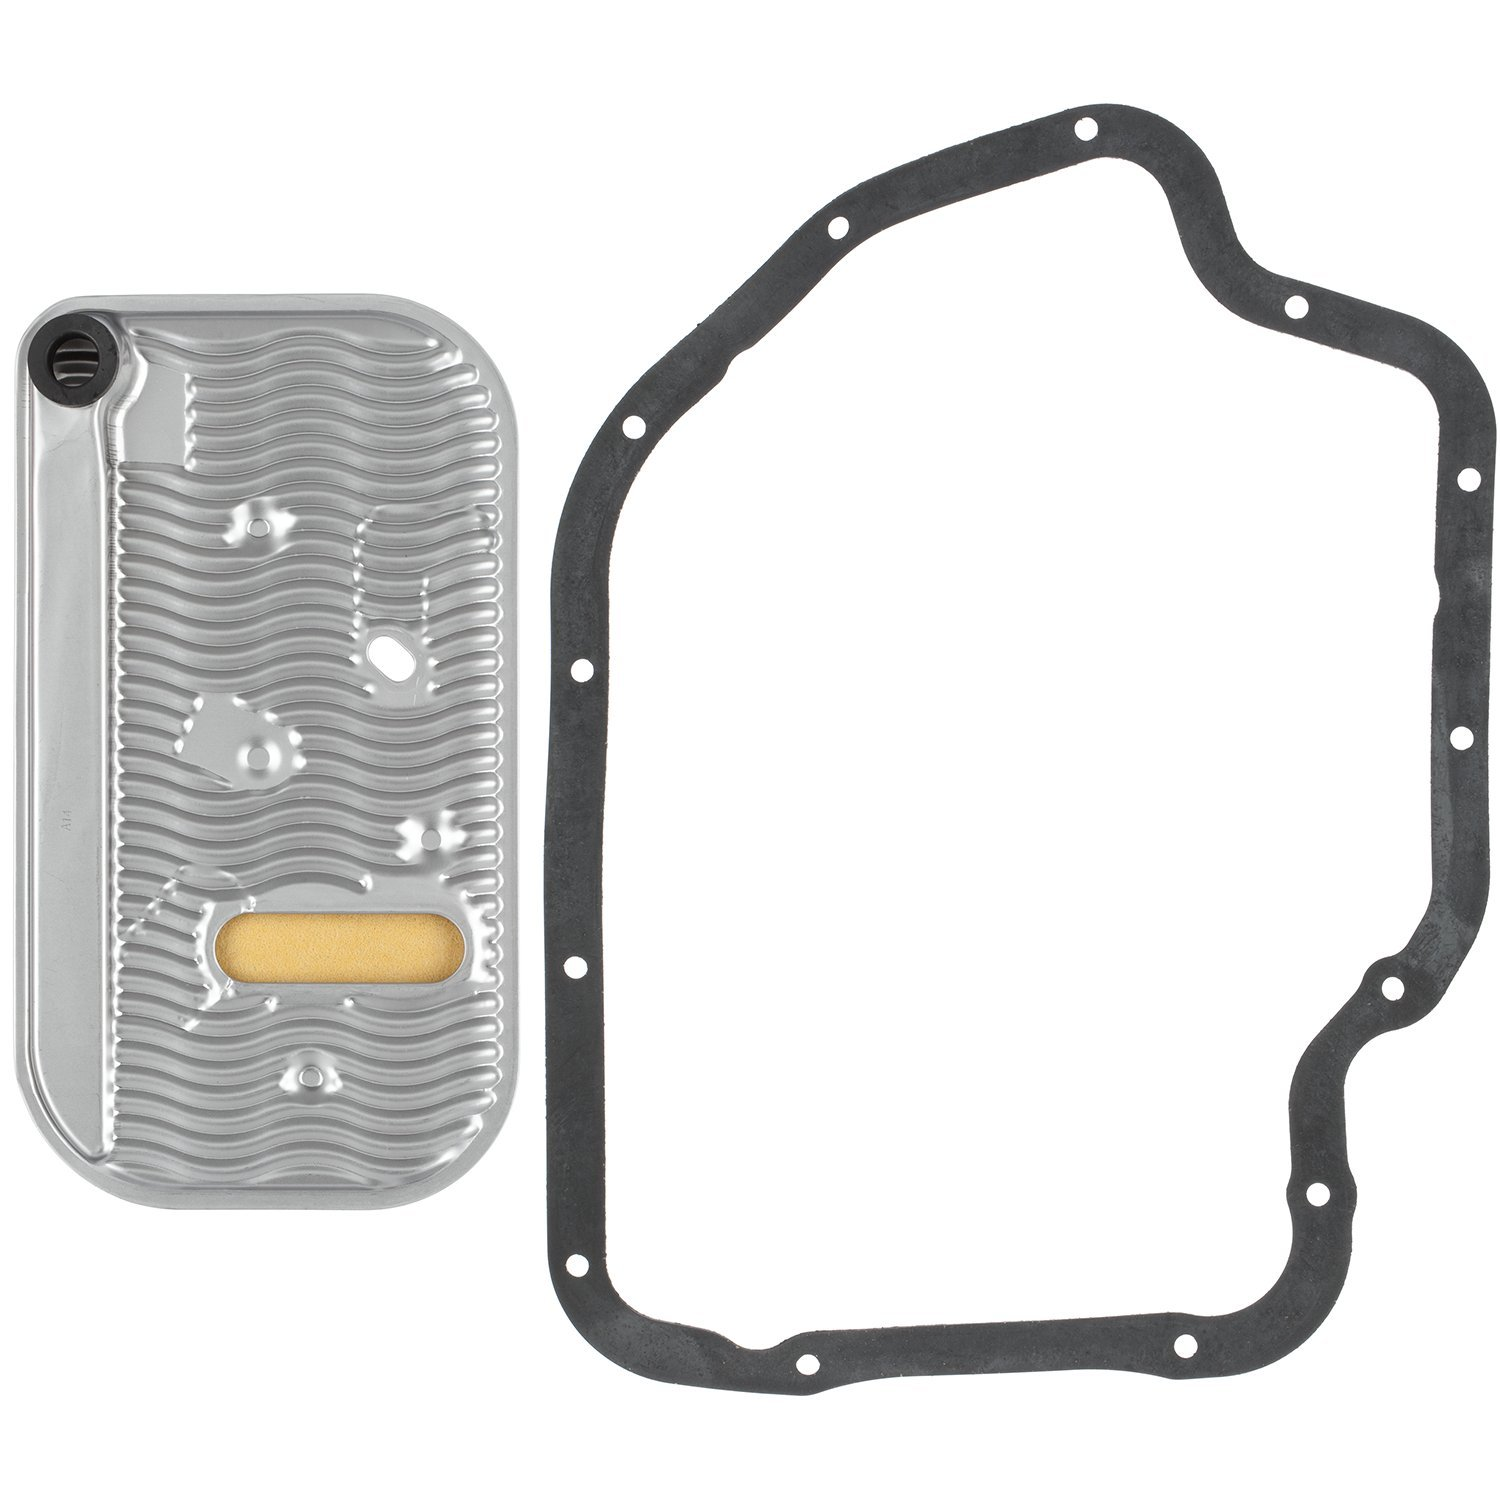 ATP TF-29 Automatic Transmission Filter Kit